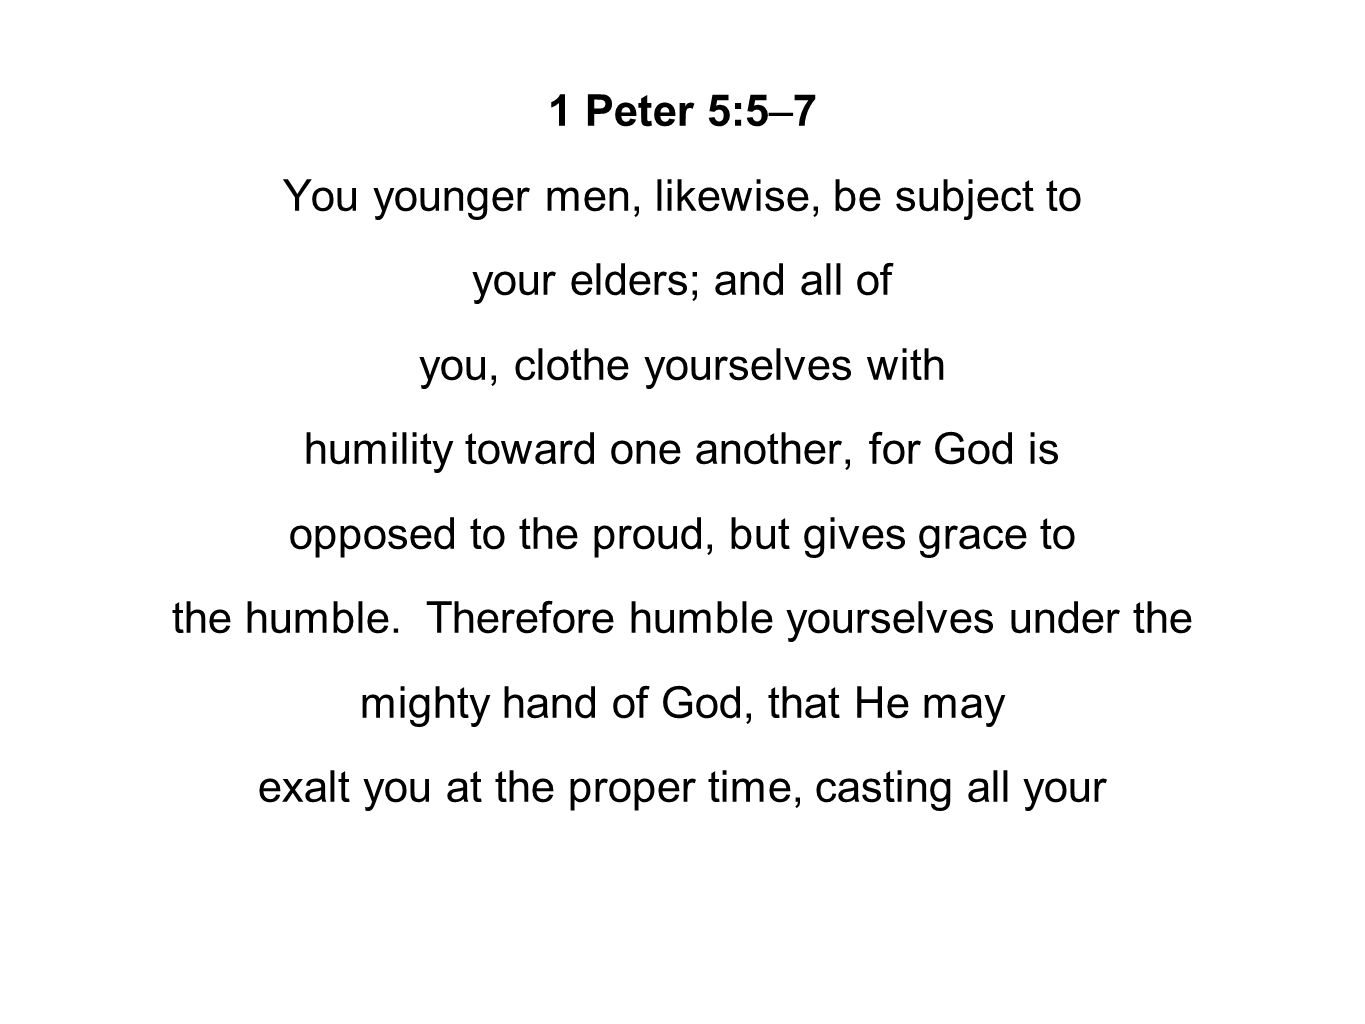 1 Peter 5:5–7 You younger men, likewise, be subject to your elders; and all of you, clothe yourselves with humility toward one another, for God is opp